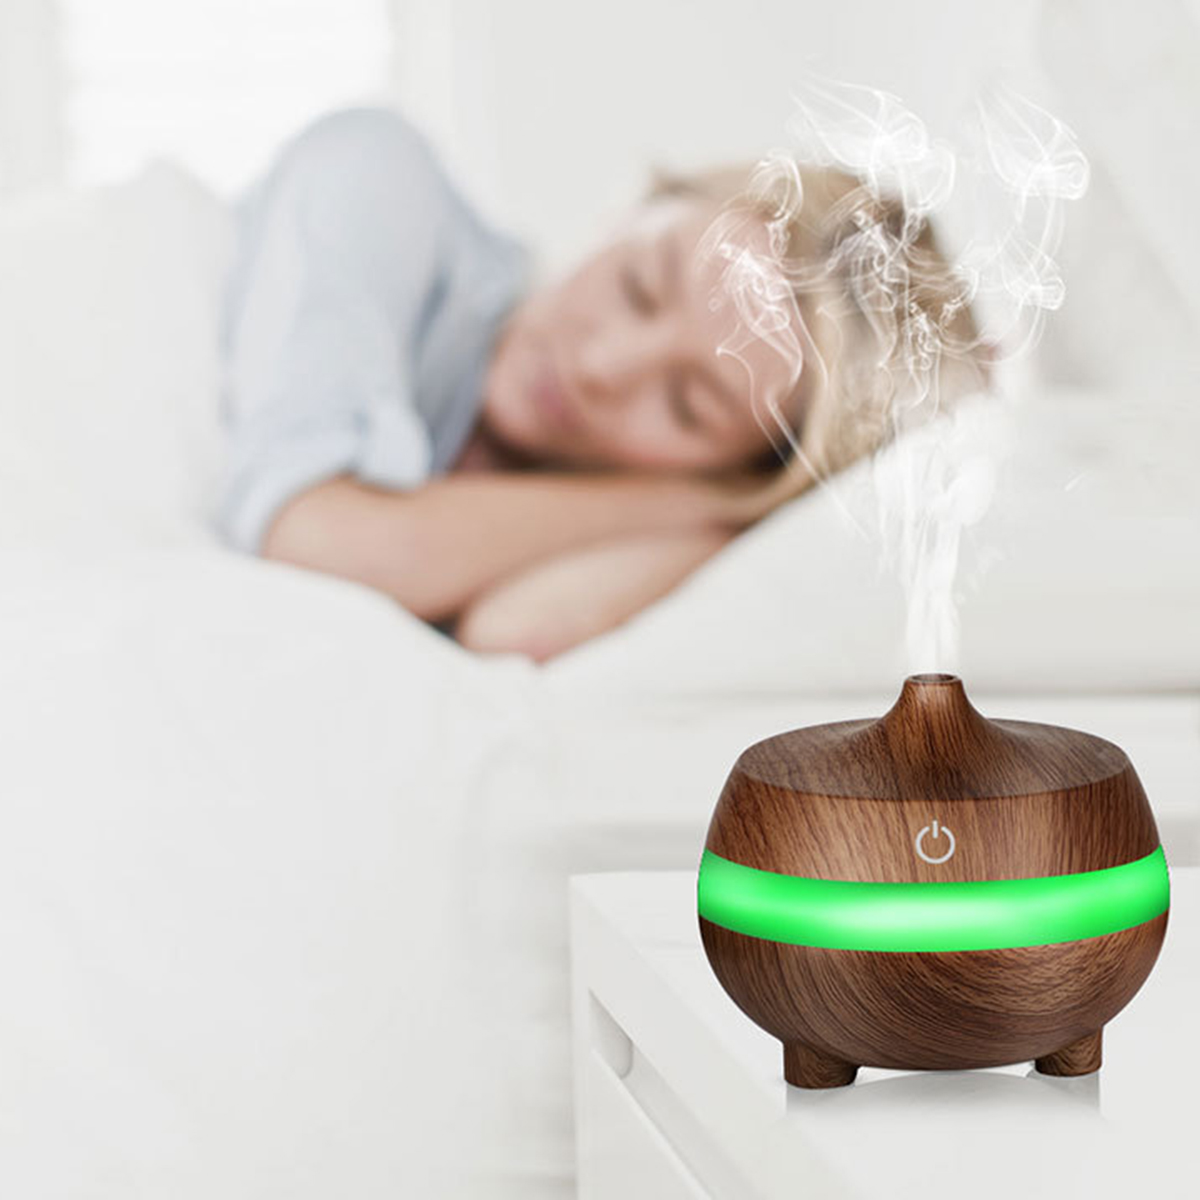 7 Soothing LED Light Ultrasonic Aroma Diffuser Essential Oil Humidifier Air Aromatherapy Purifier